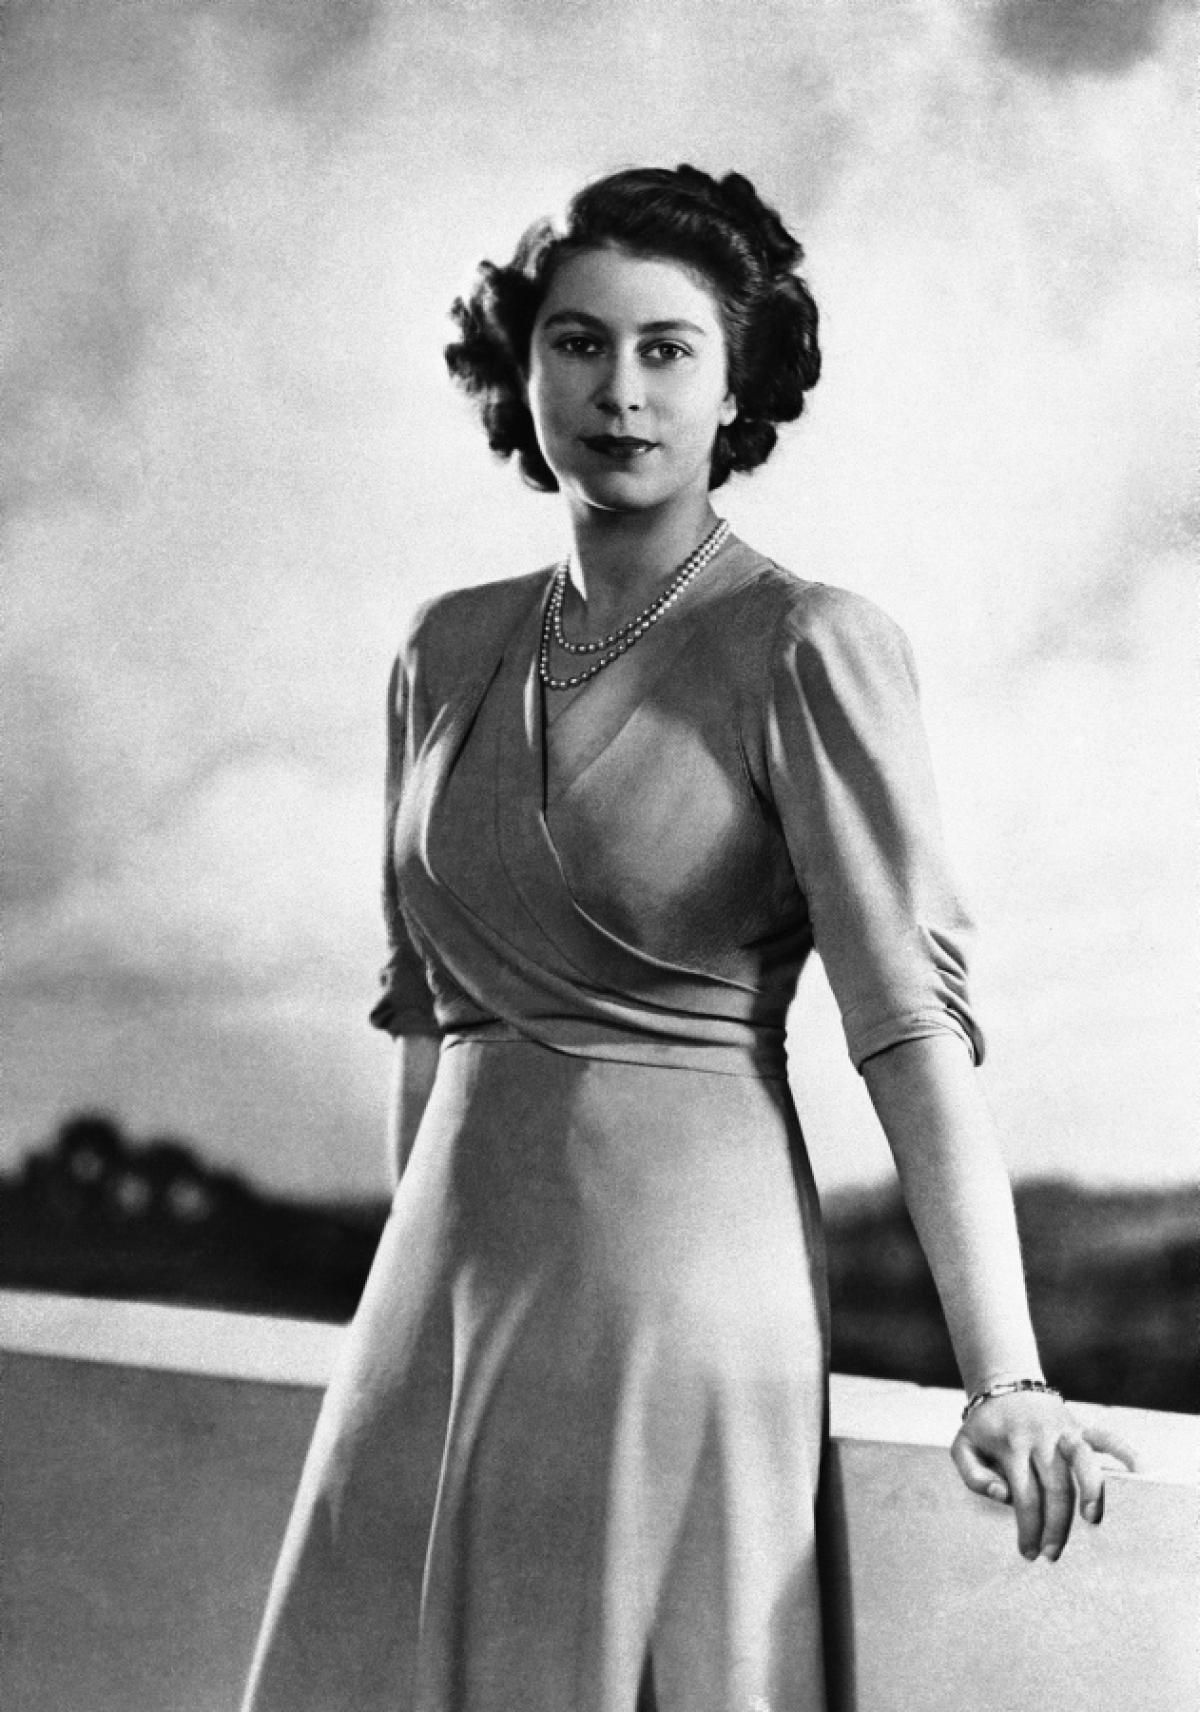 Queen Elizabeth II, 1946 Photos The life and reign of